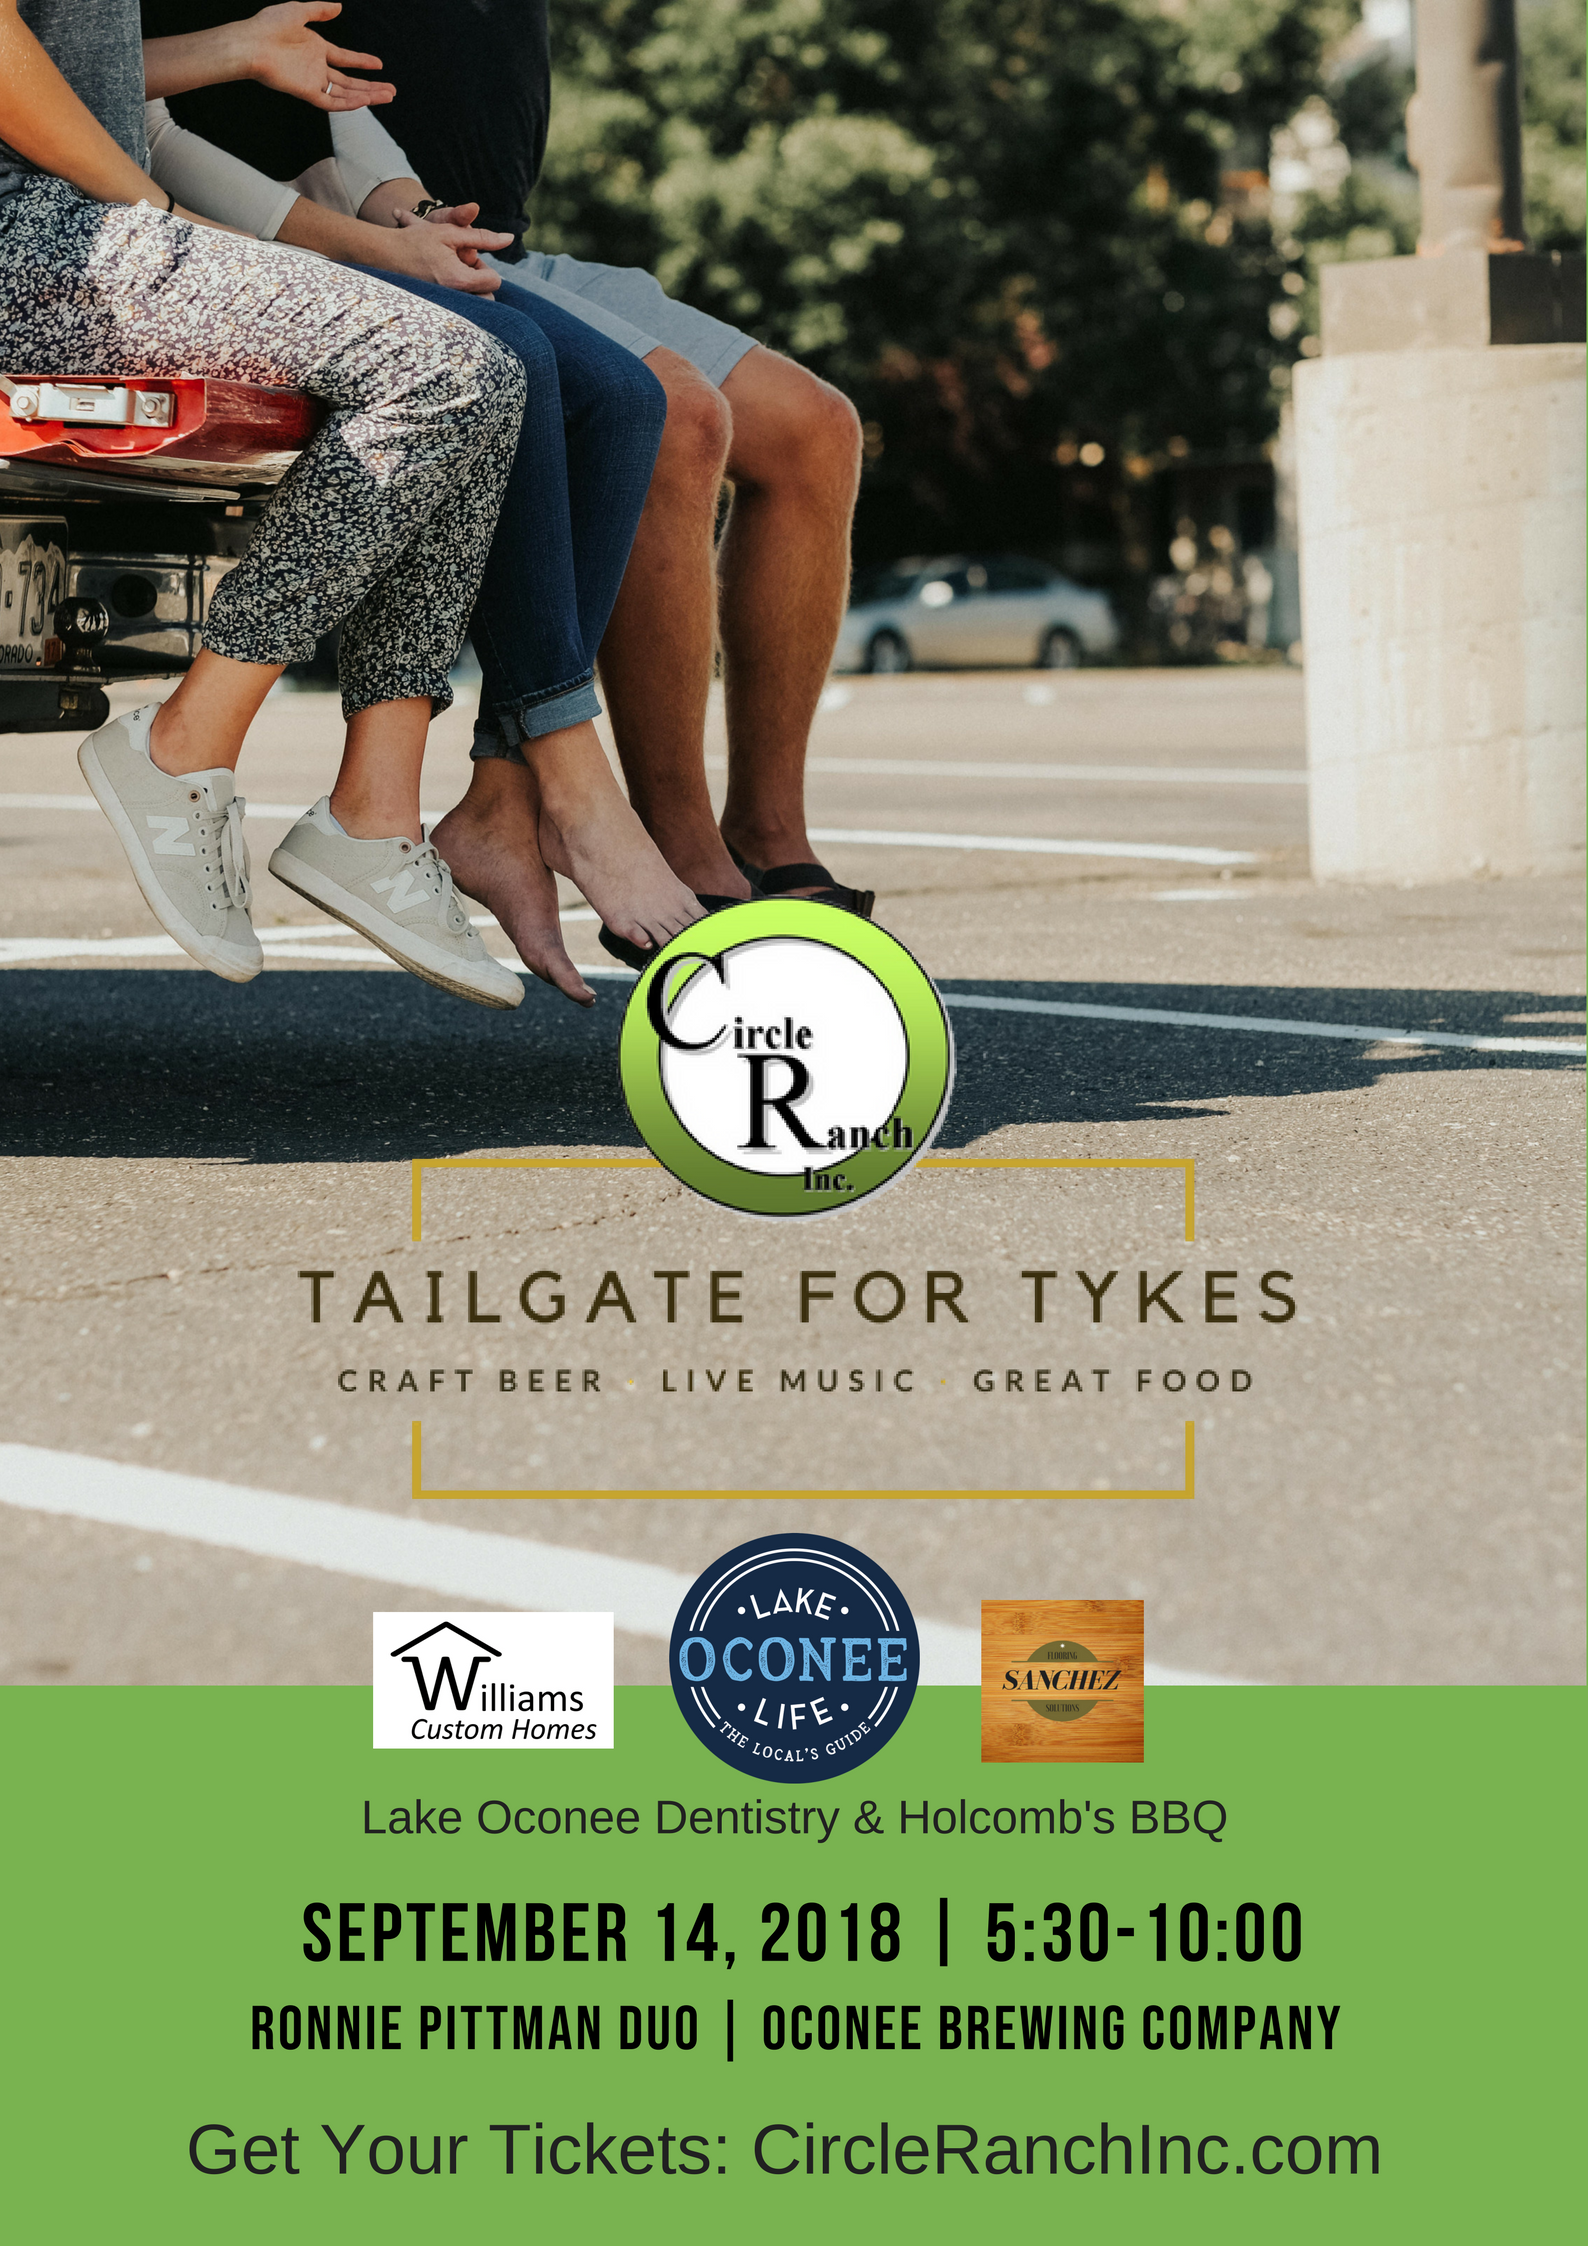 Tailgate For Tykes | LakeOconeeLife.com